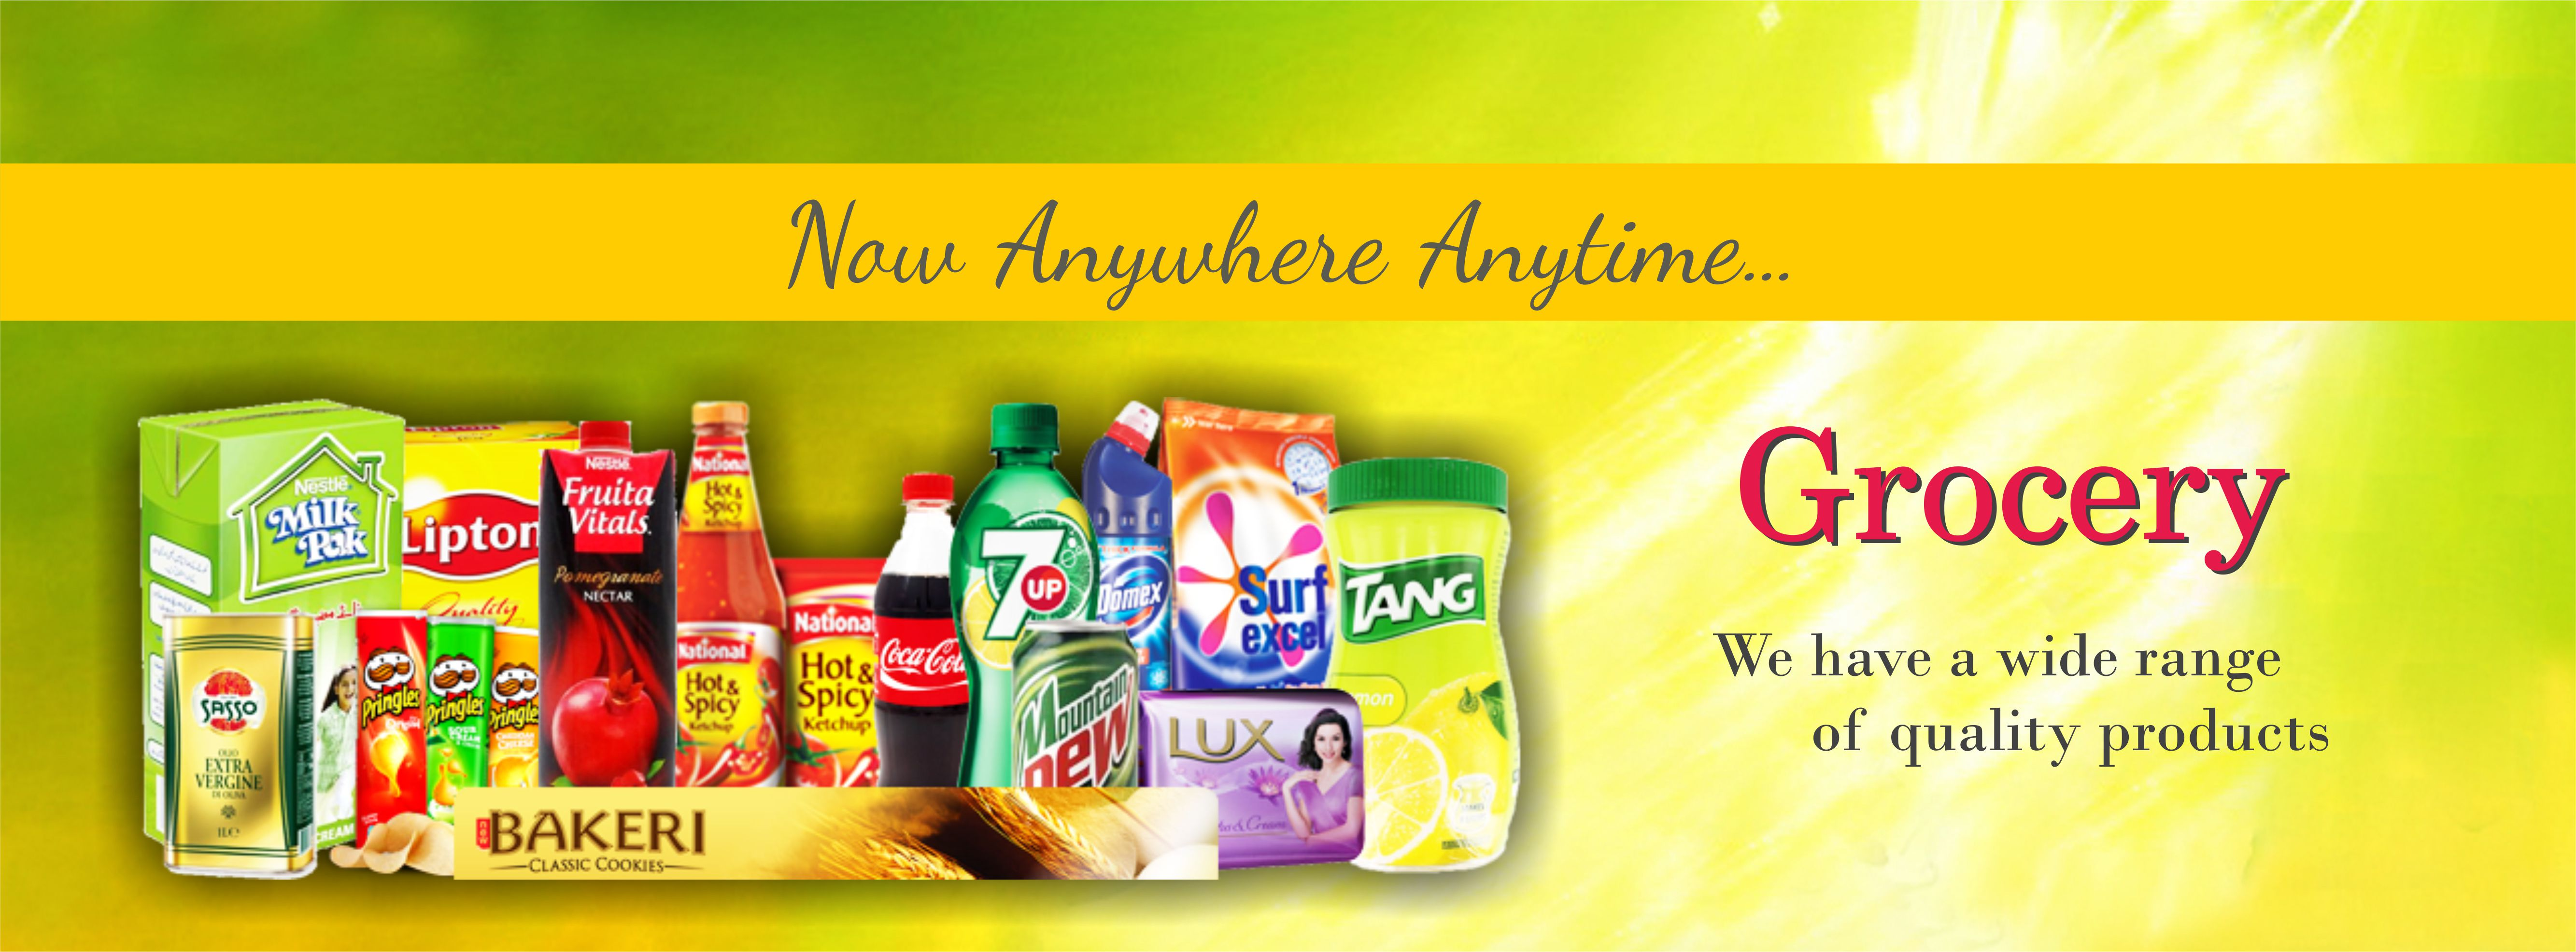 Kitchen Store Products Banner